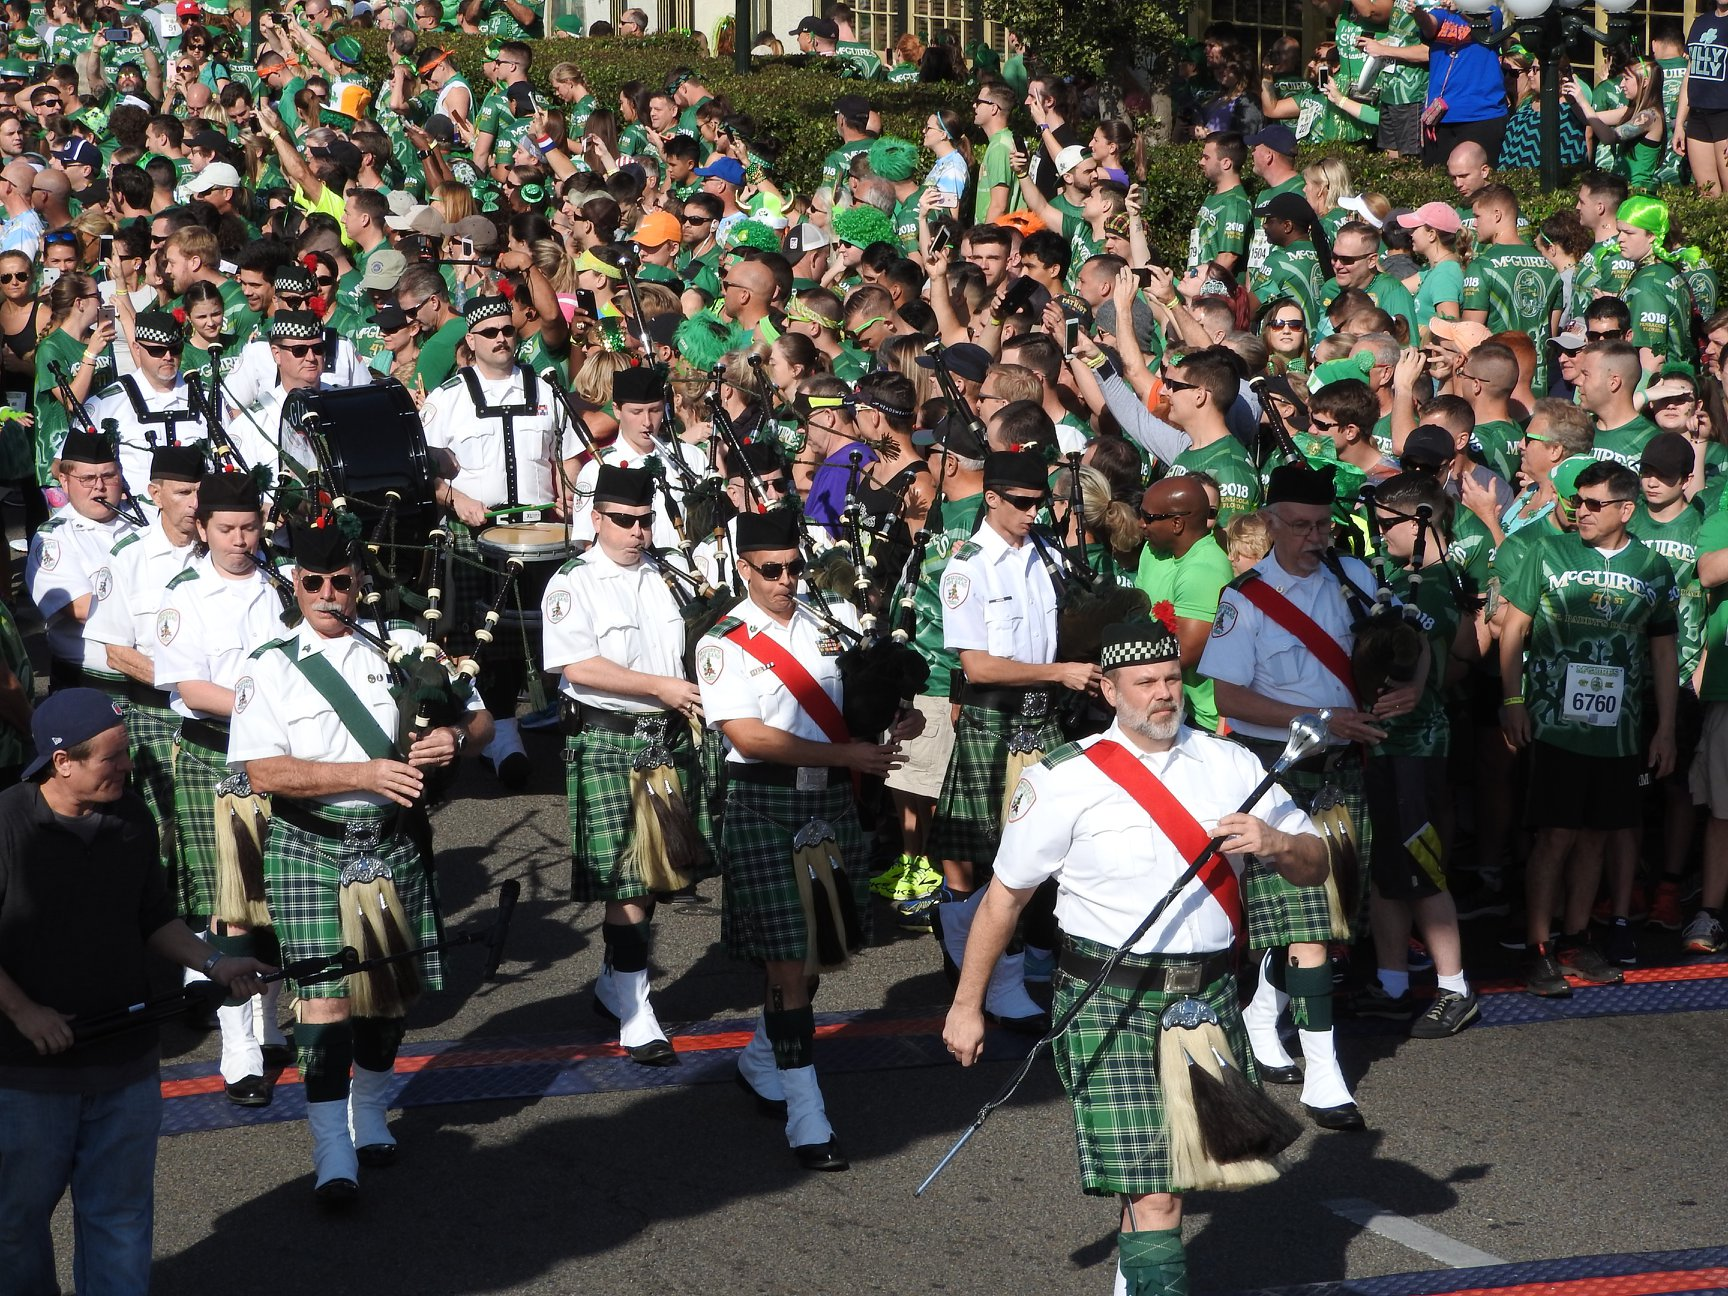 McGuire's Irish Pipe Band walking on street